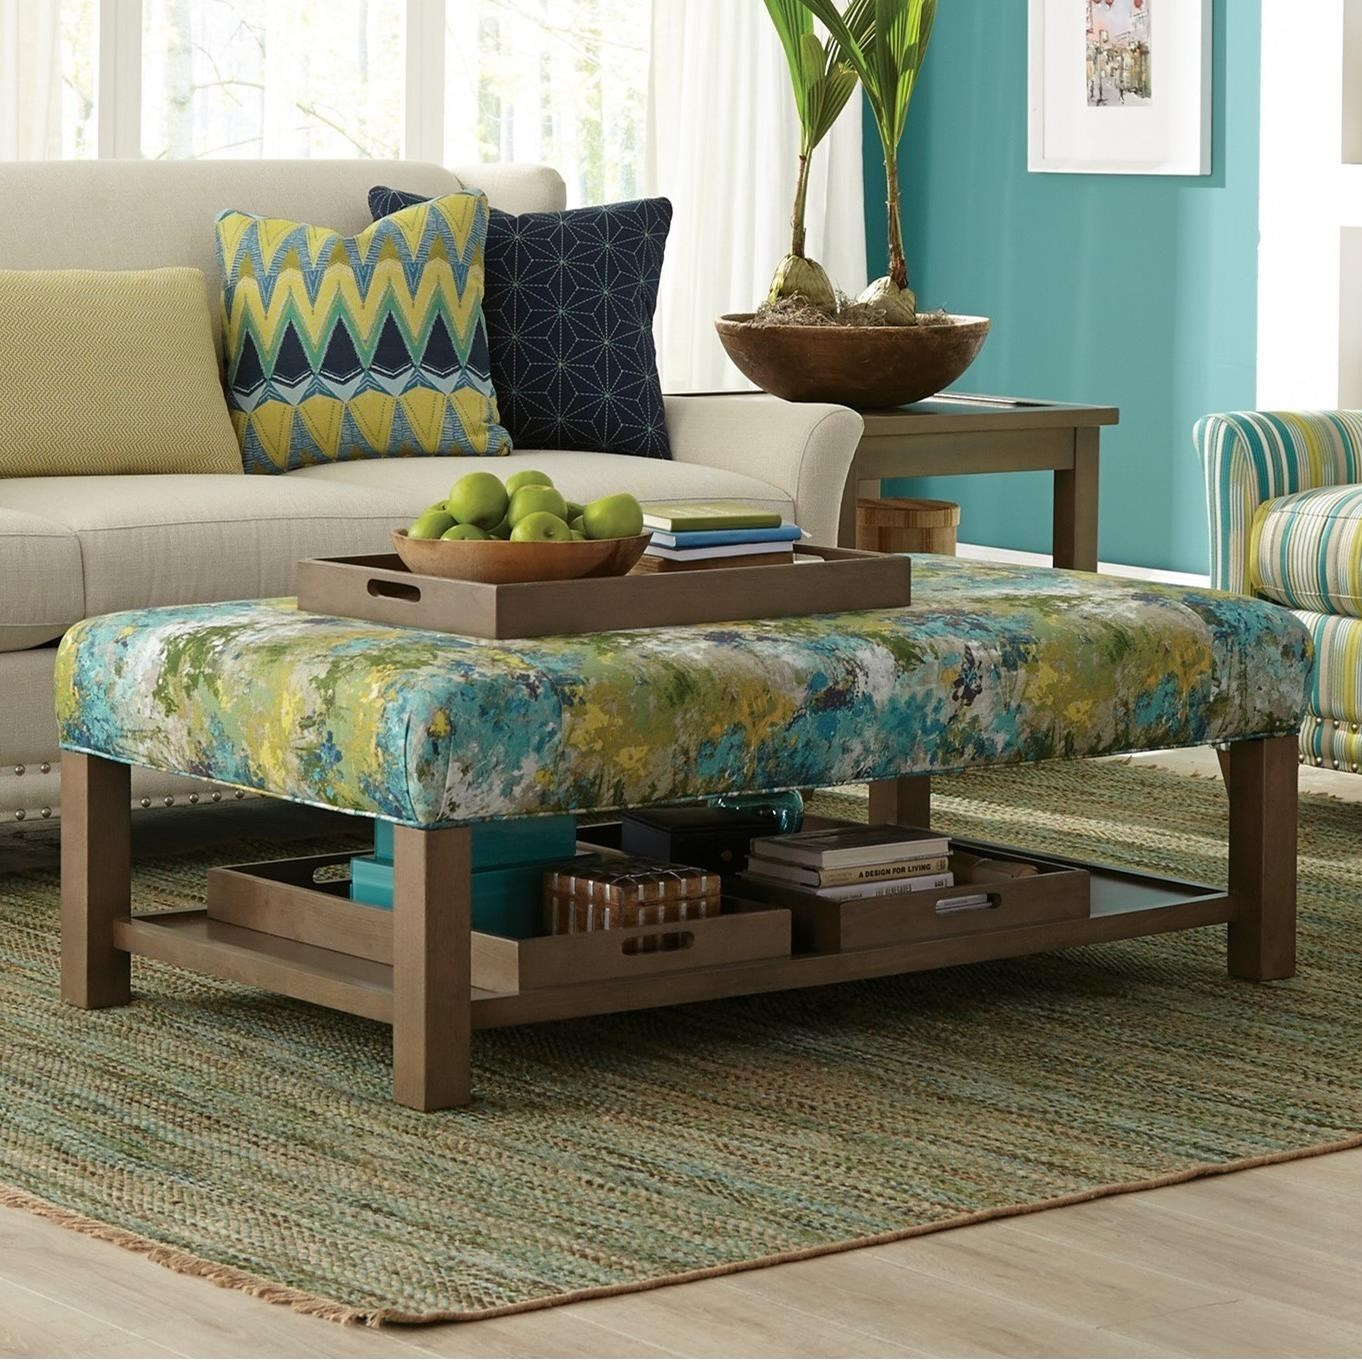 Craftmaster Accent Ottomans Contemporary Storage Bench